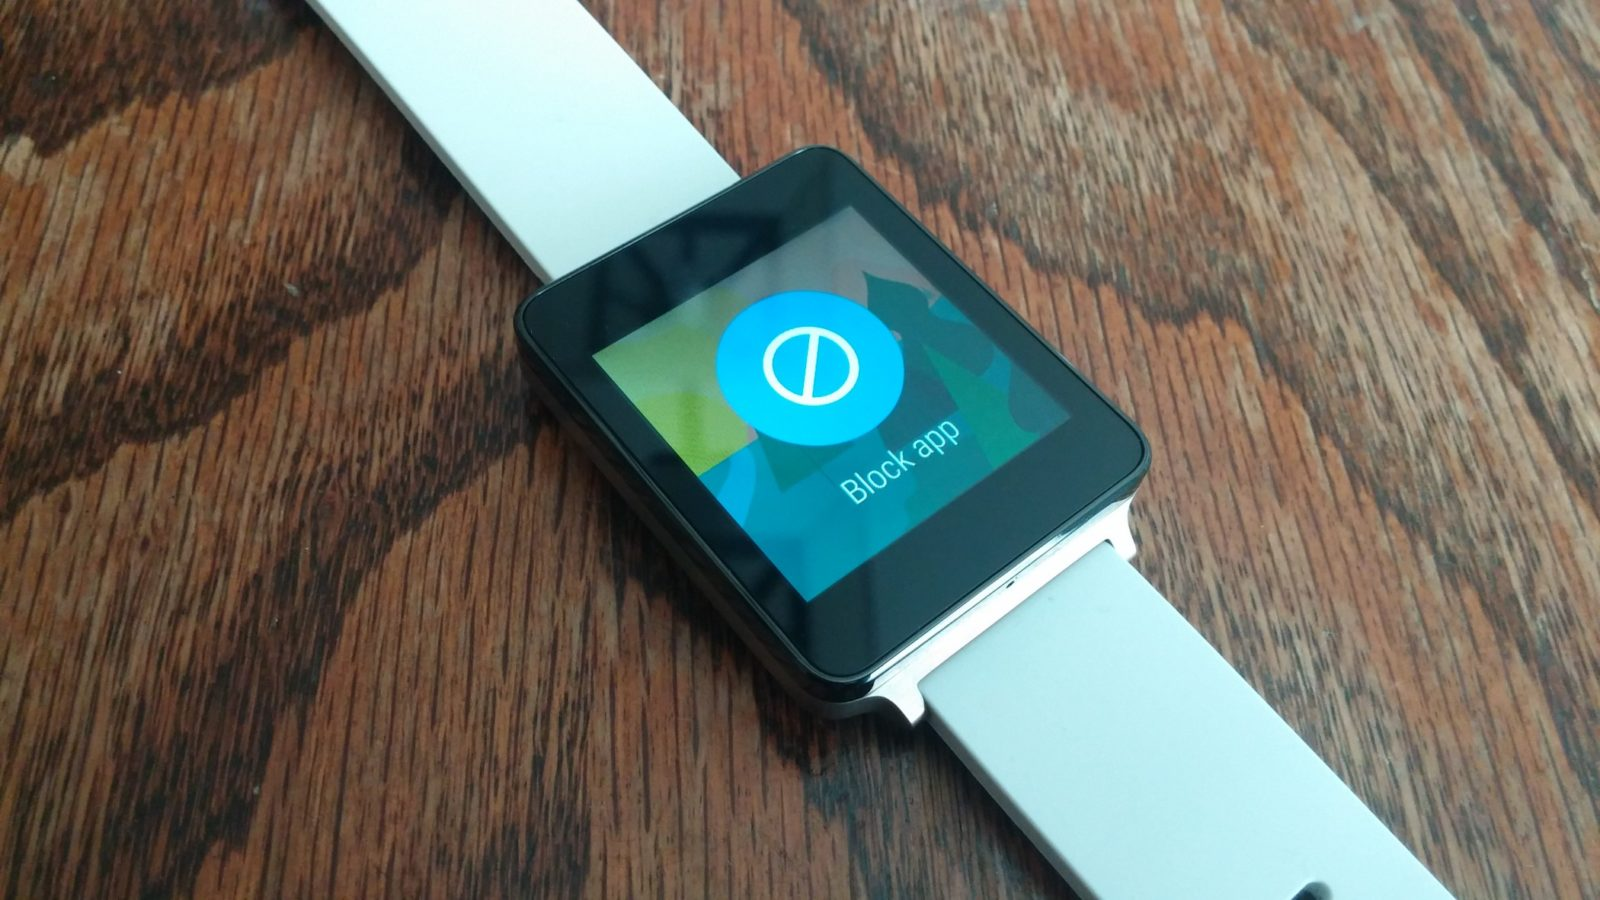 Android Wear Block